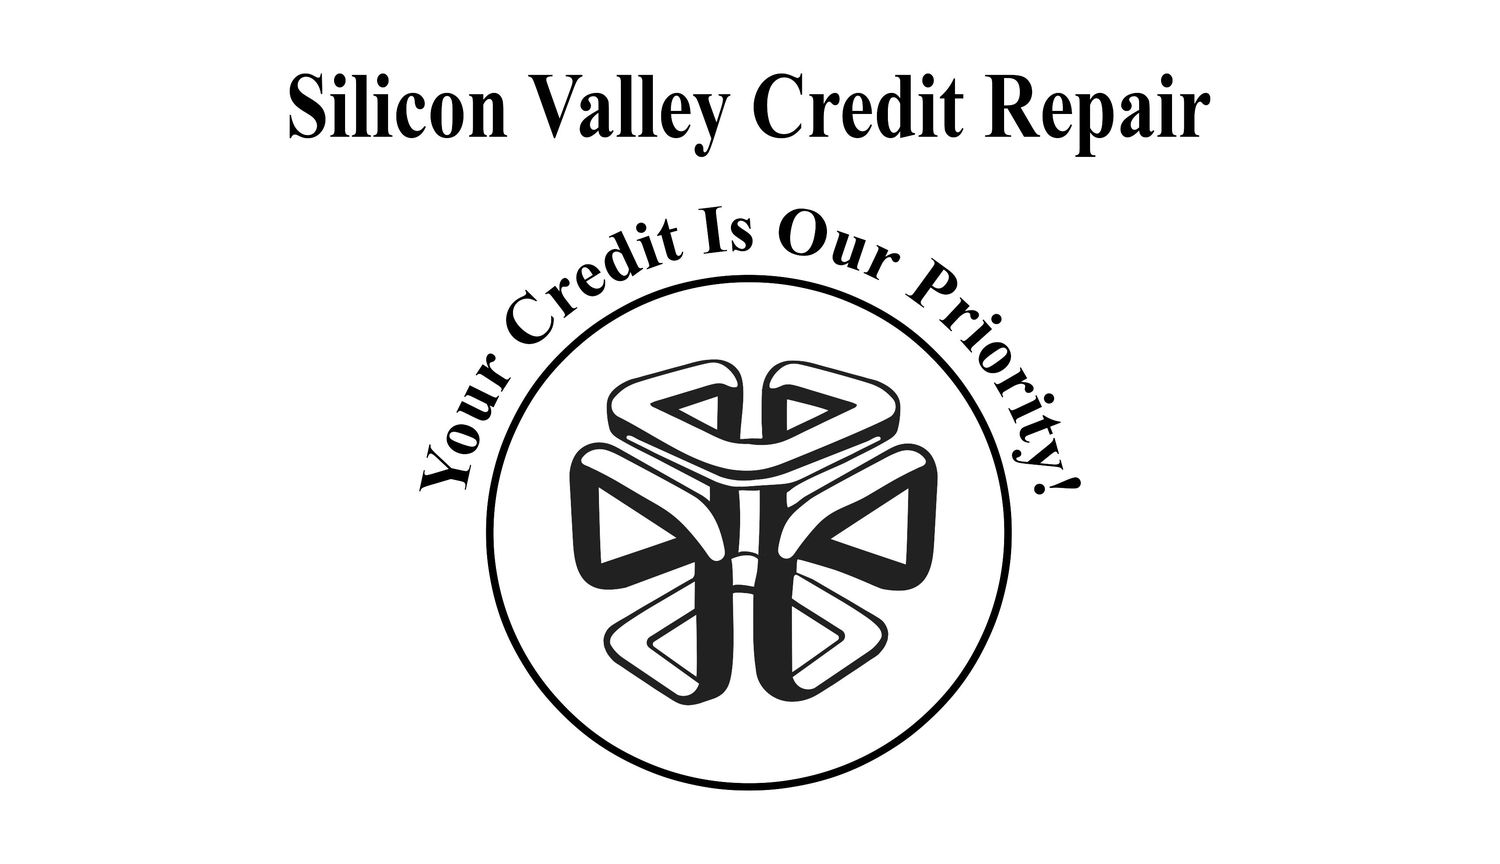 Silicon Valley Credit Repair